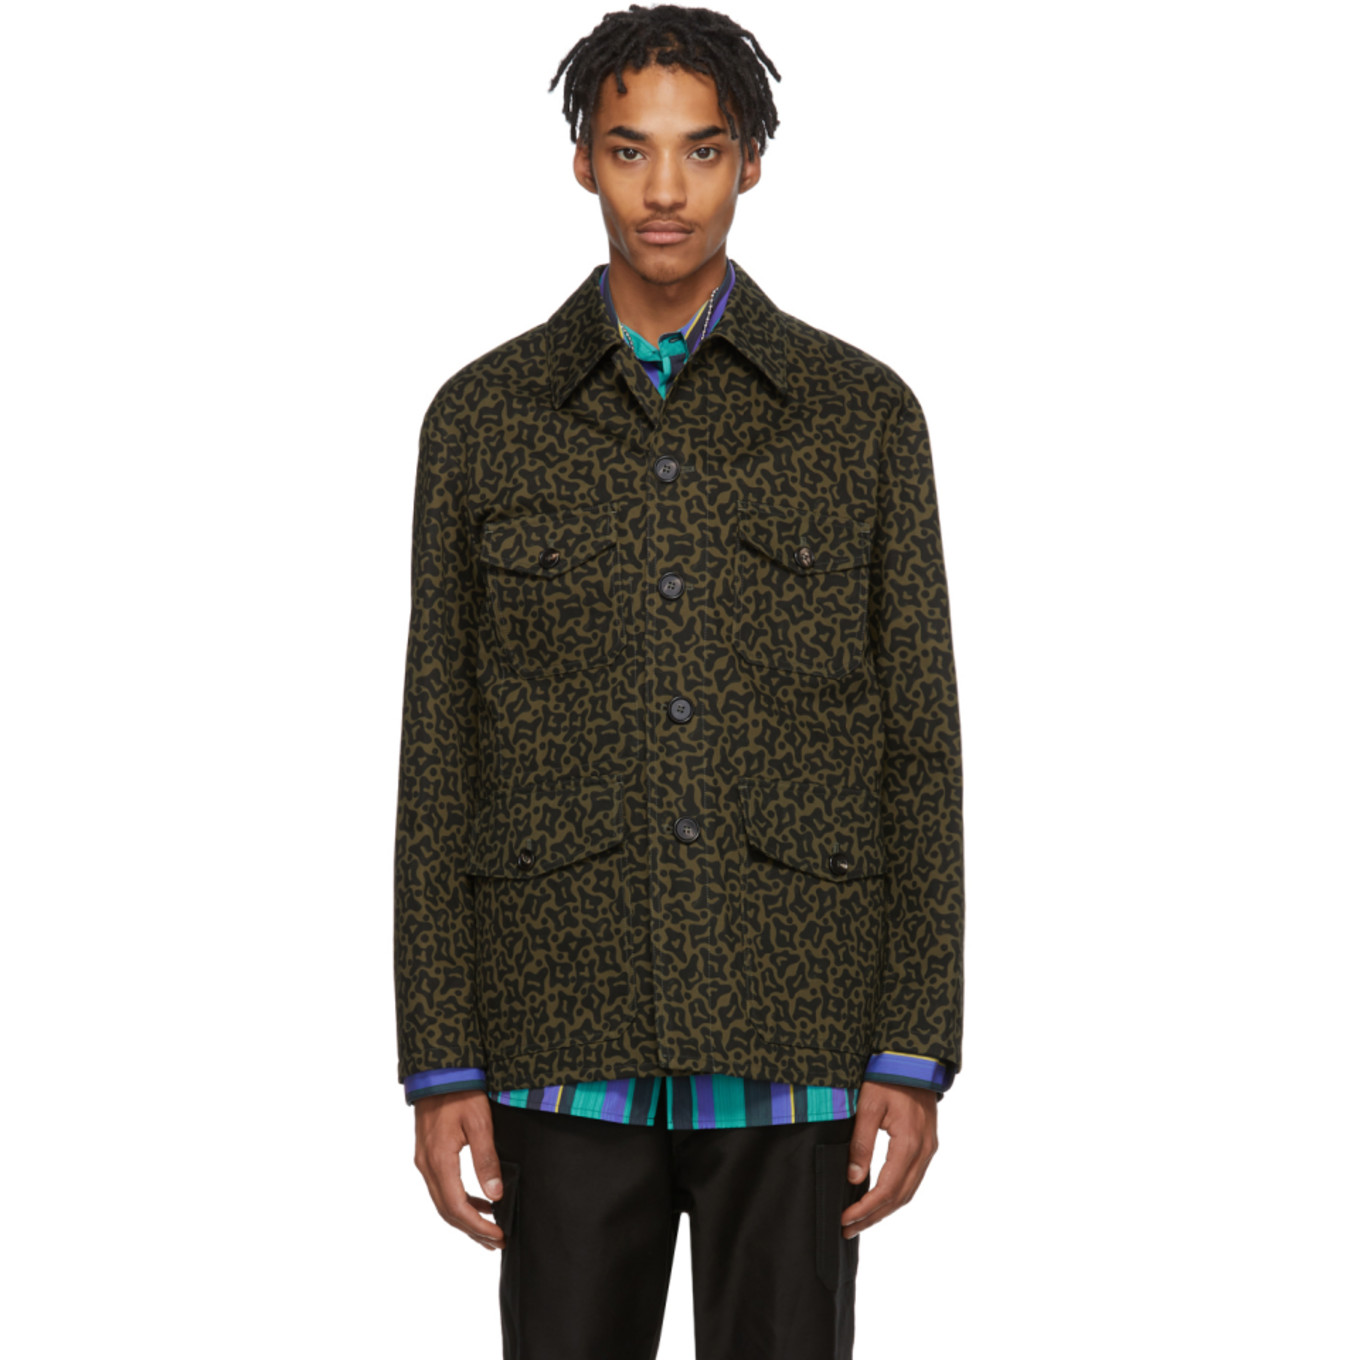 Black & Green Camo Cells Work Jacket by Marni